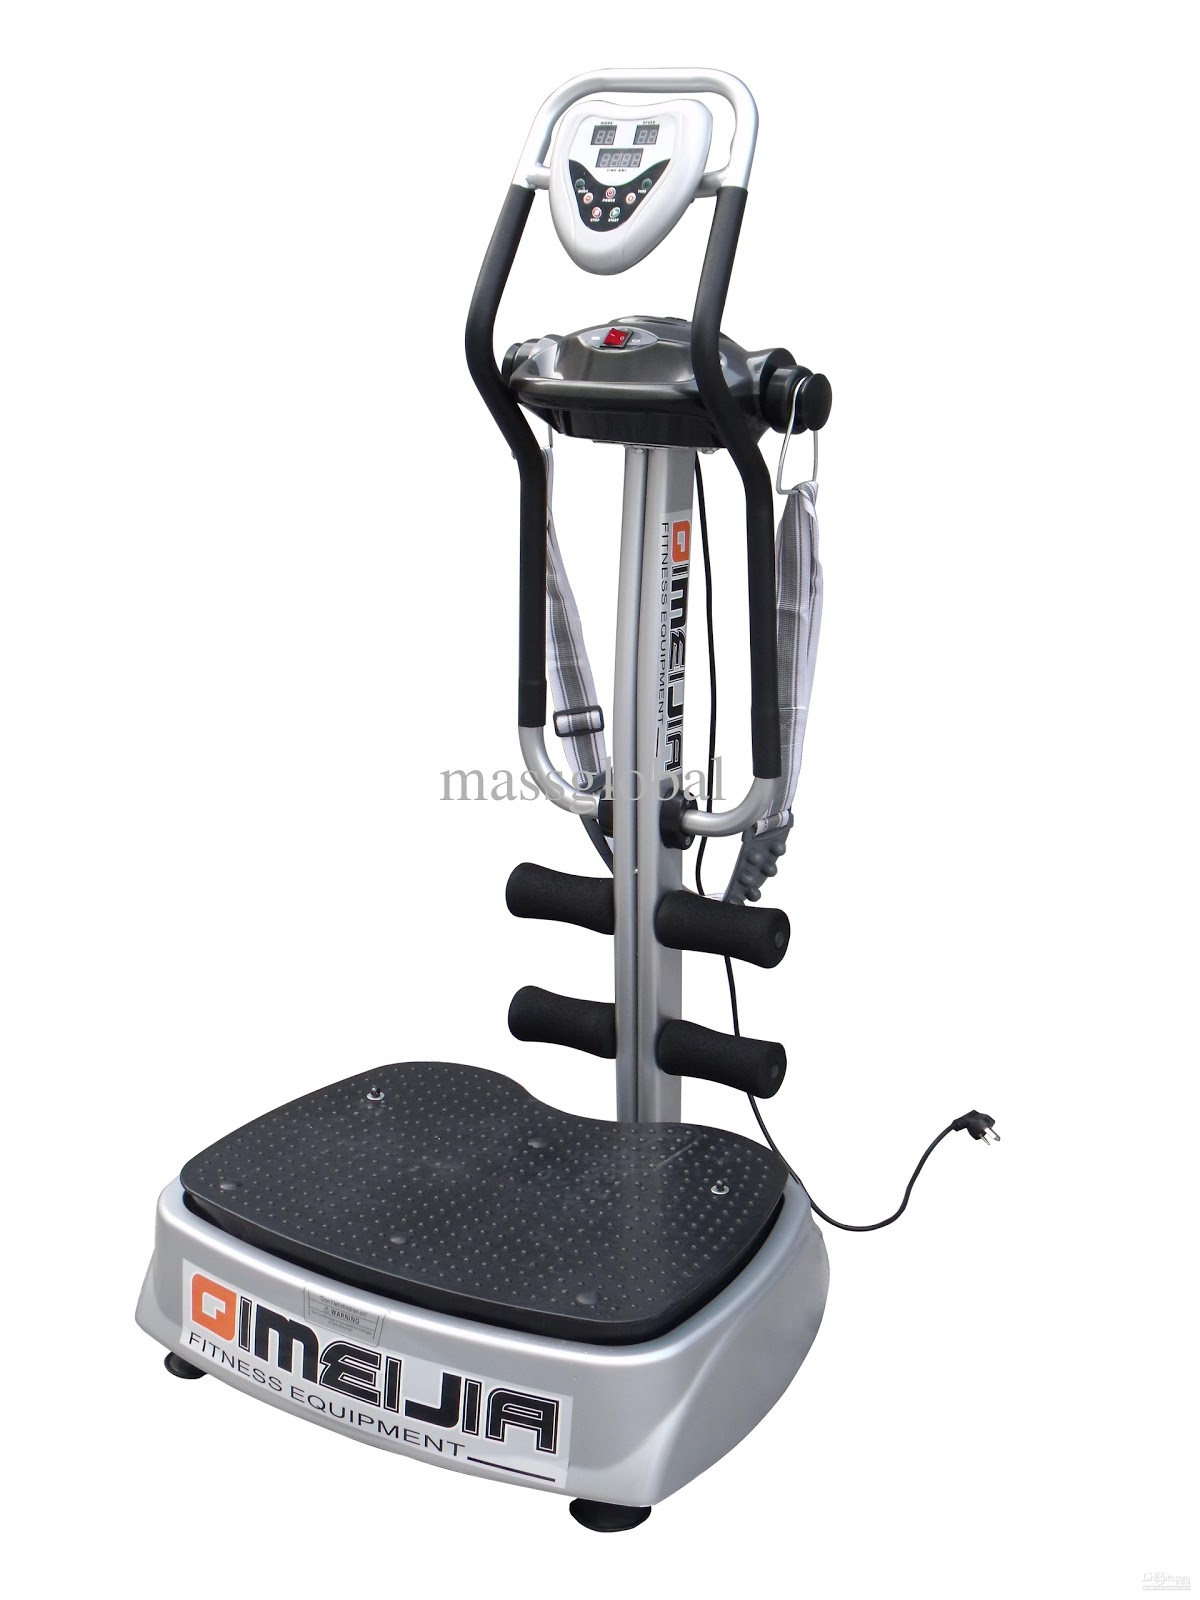 vibrating belt machine